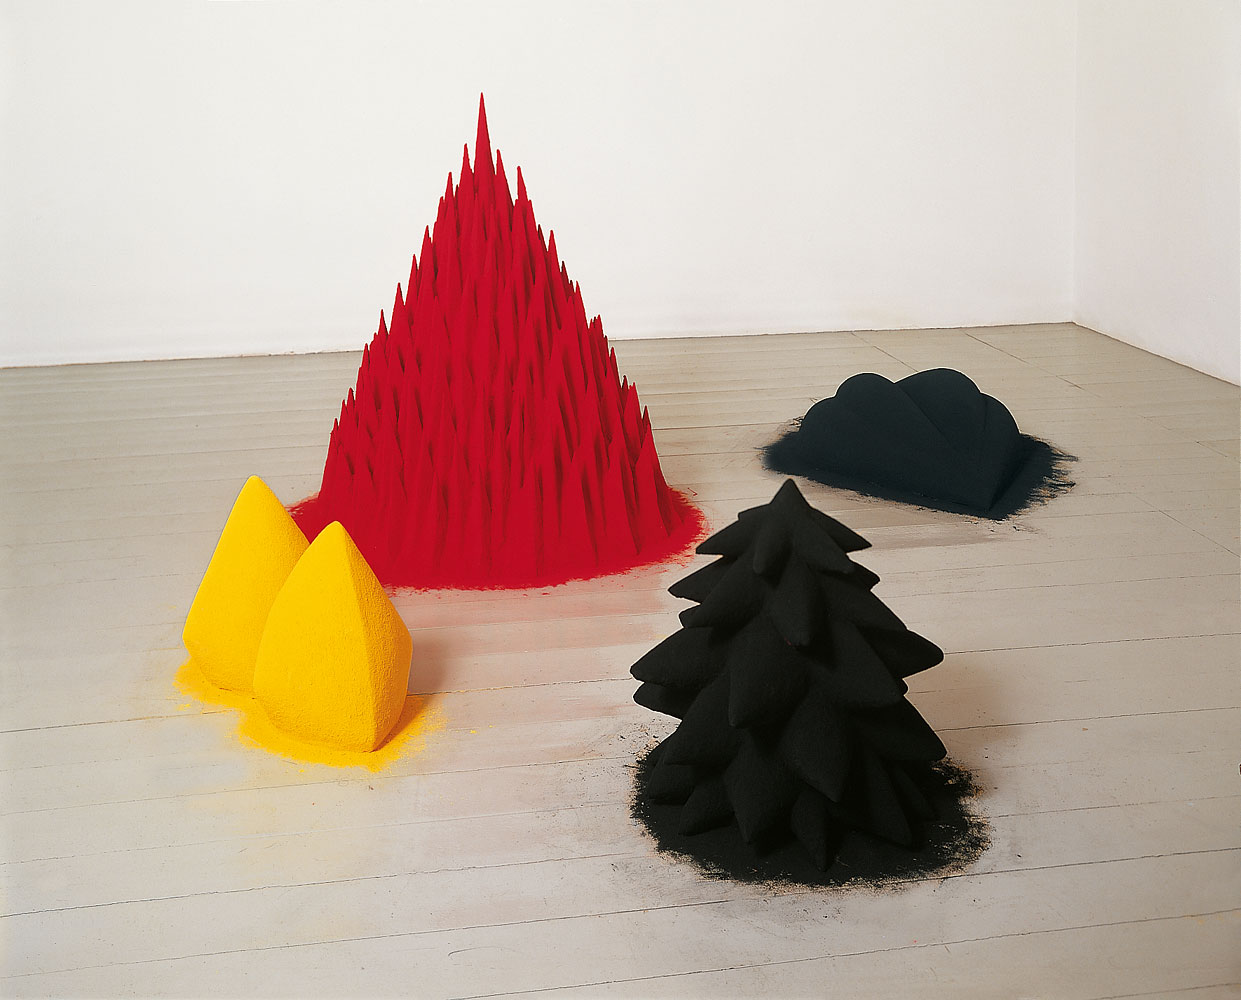 Anish Kapoor Red Paintings